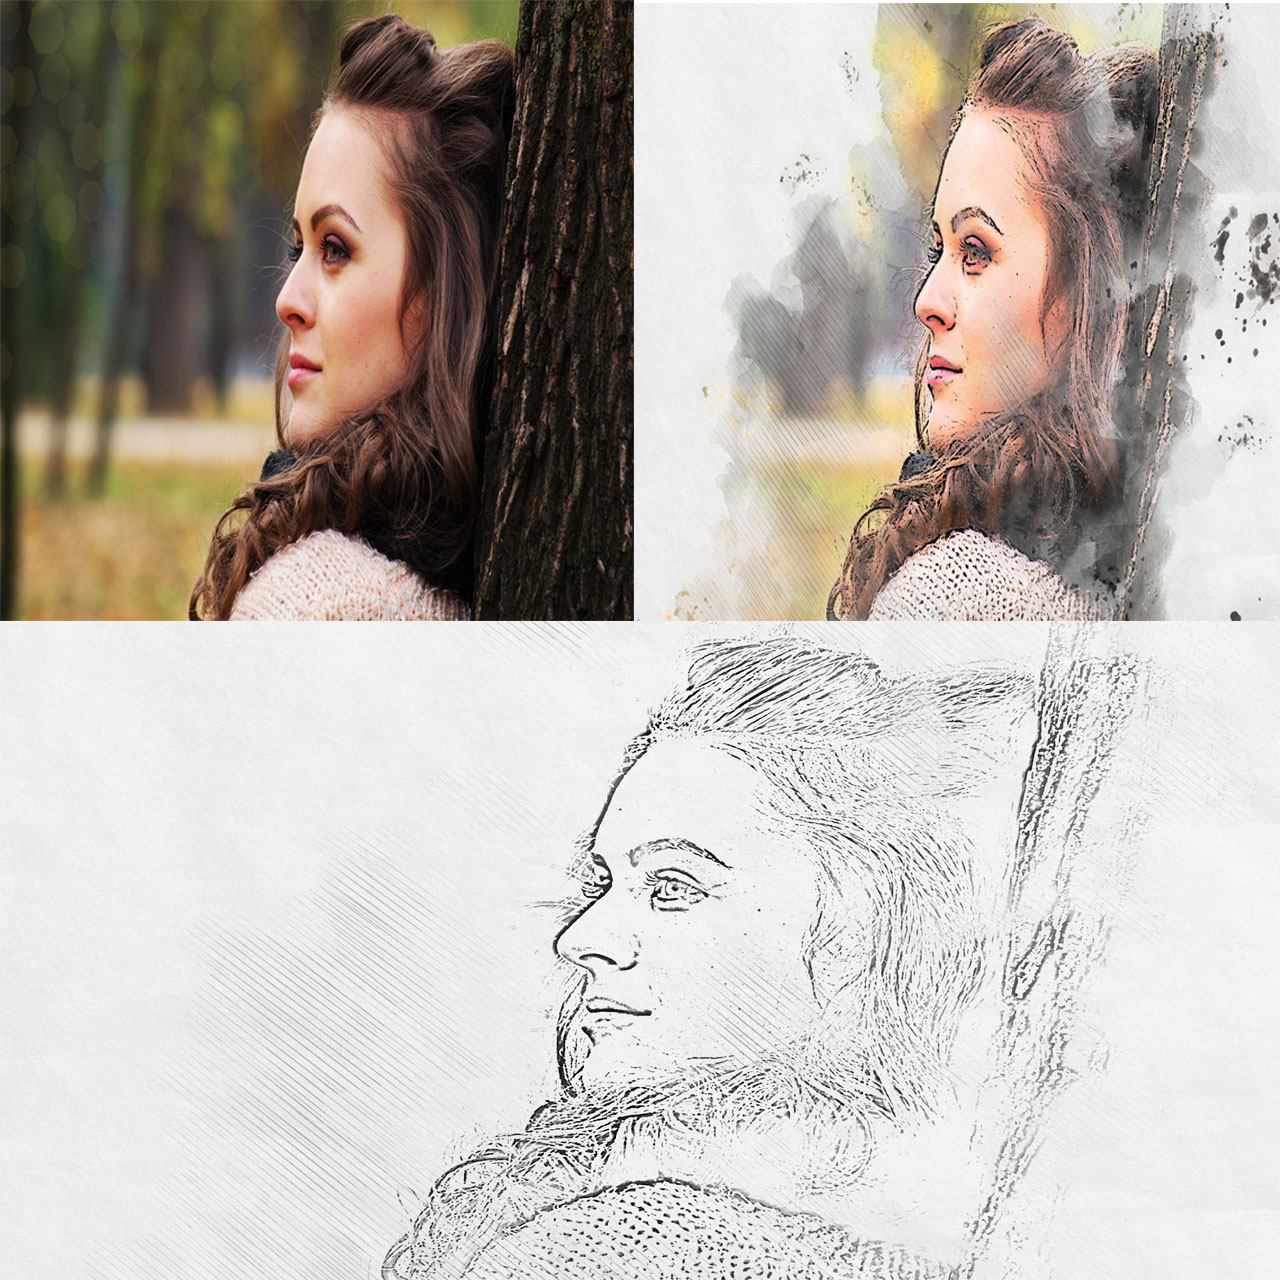 i will convert your 3 photo into pencil sketch art